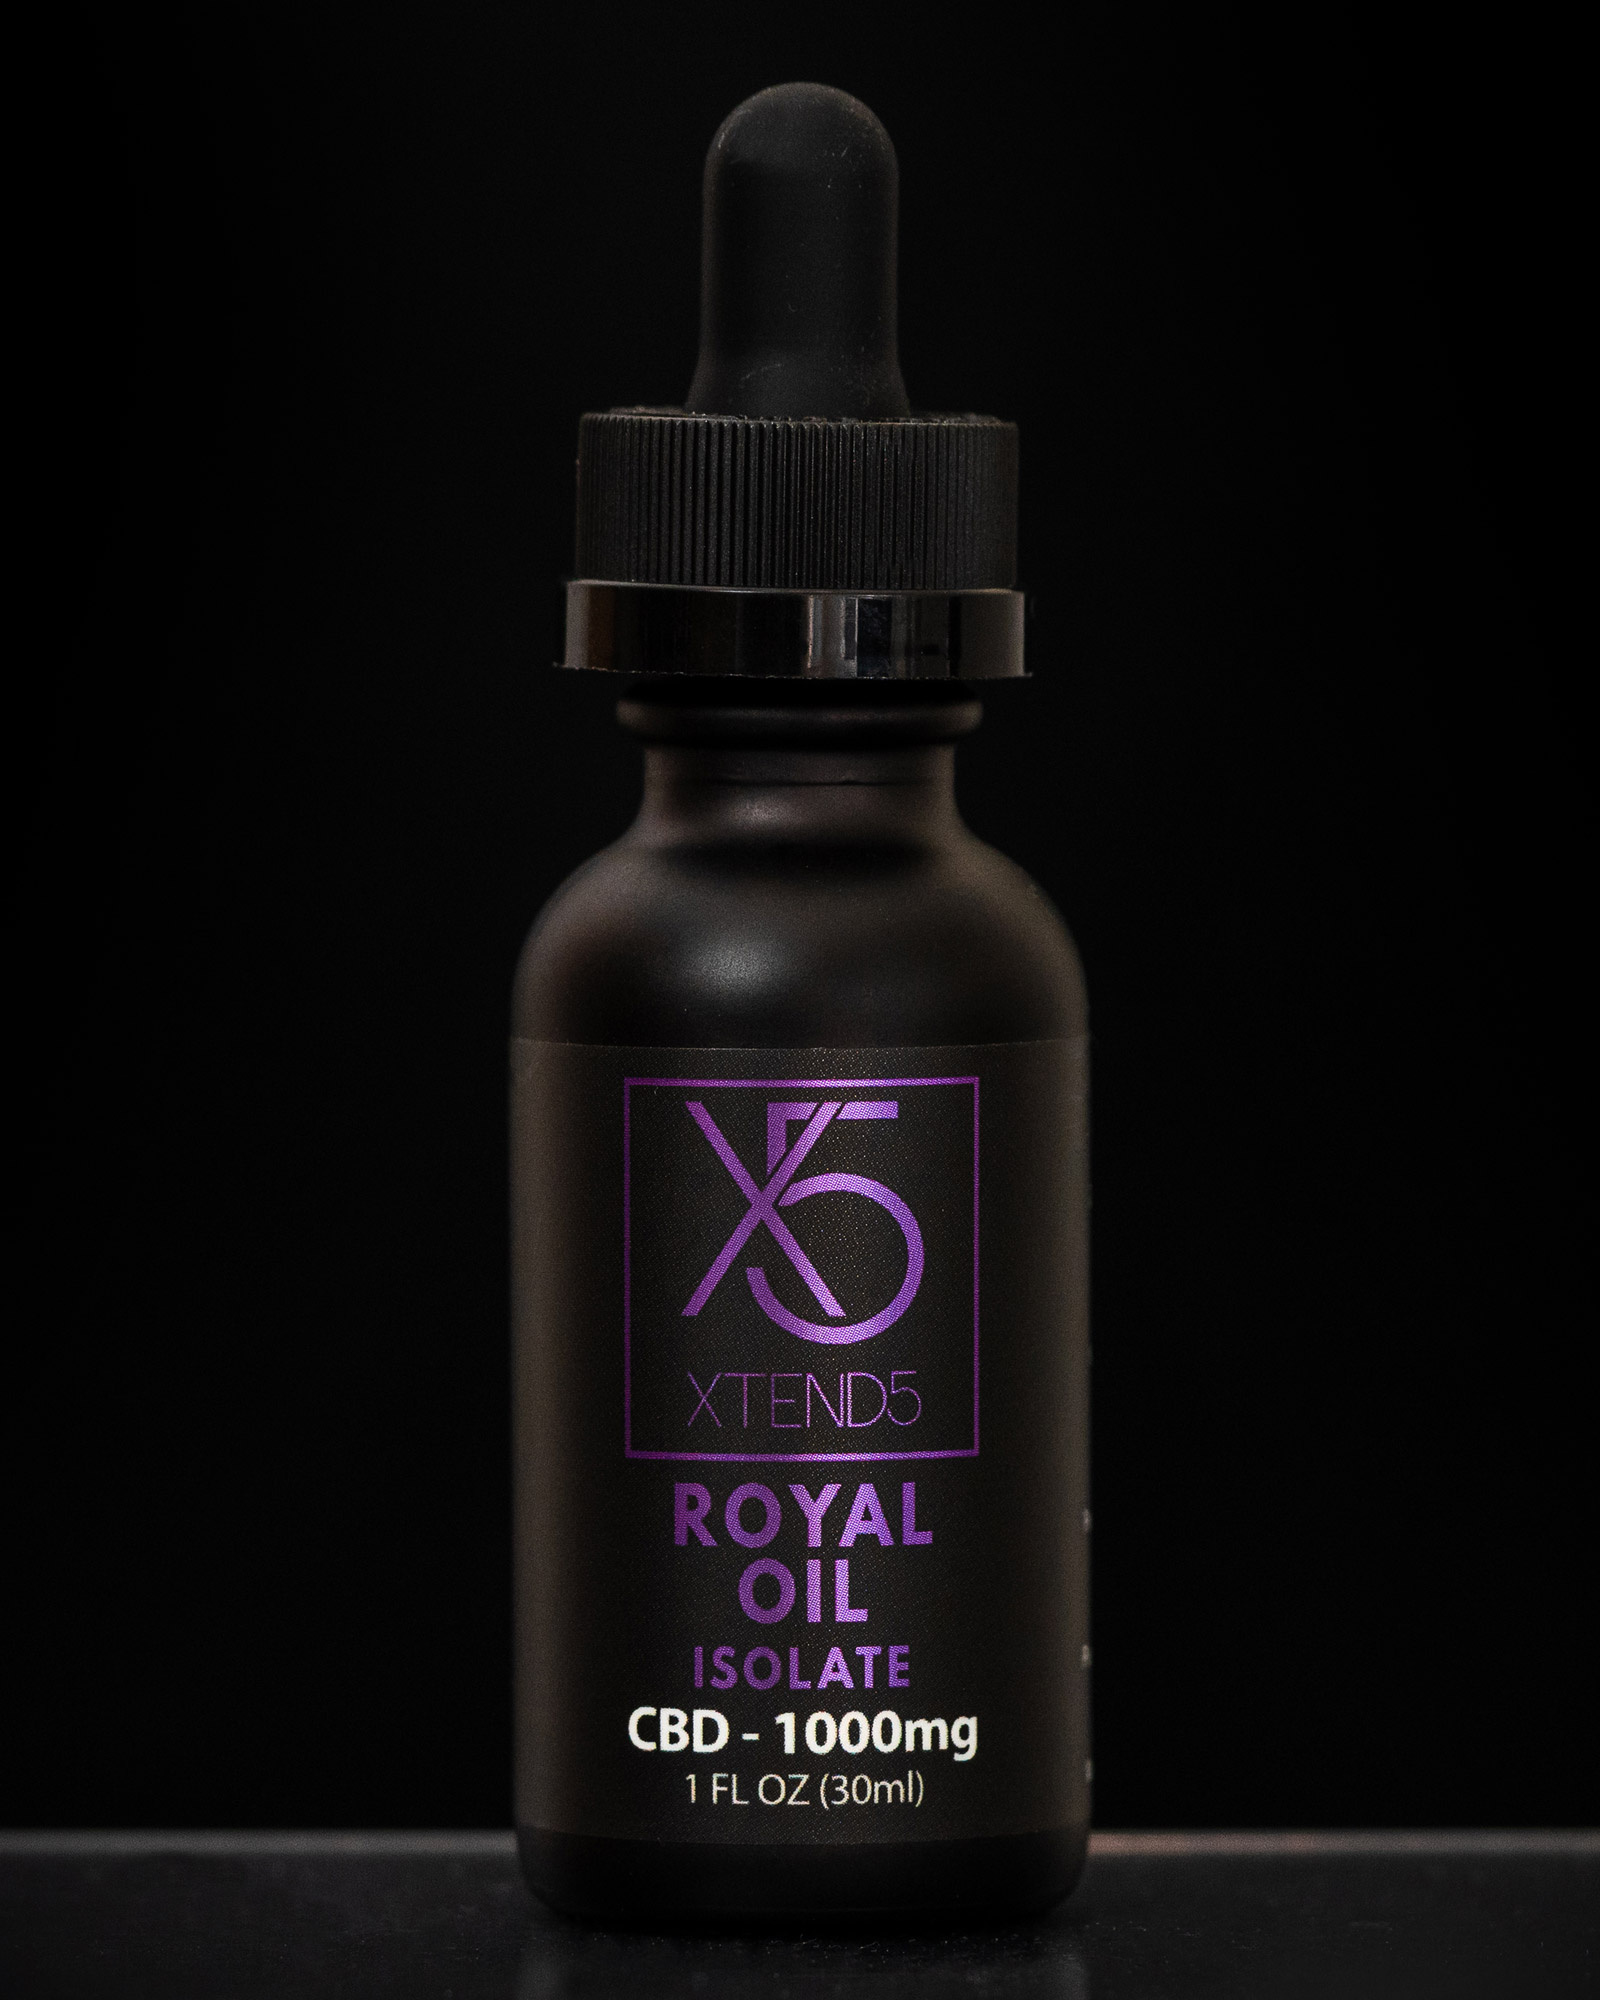 xtend5 royal oil 1000mg - 1000mg CBD Oil